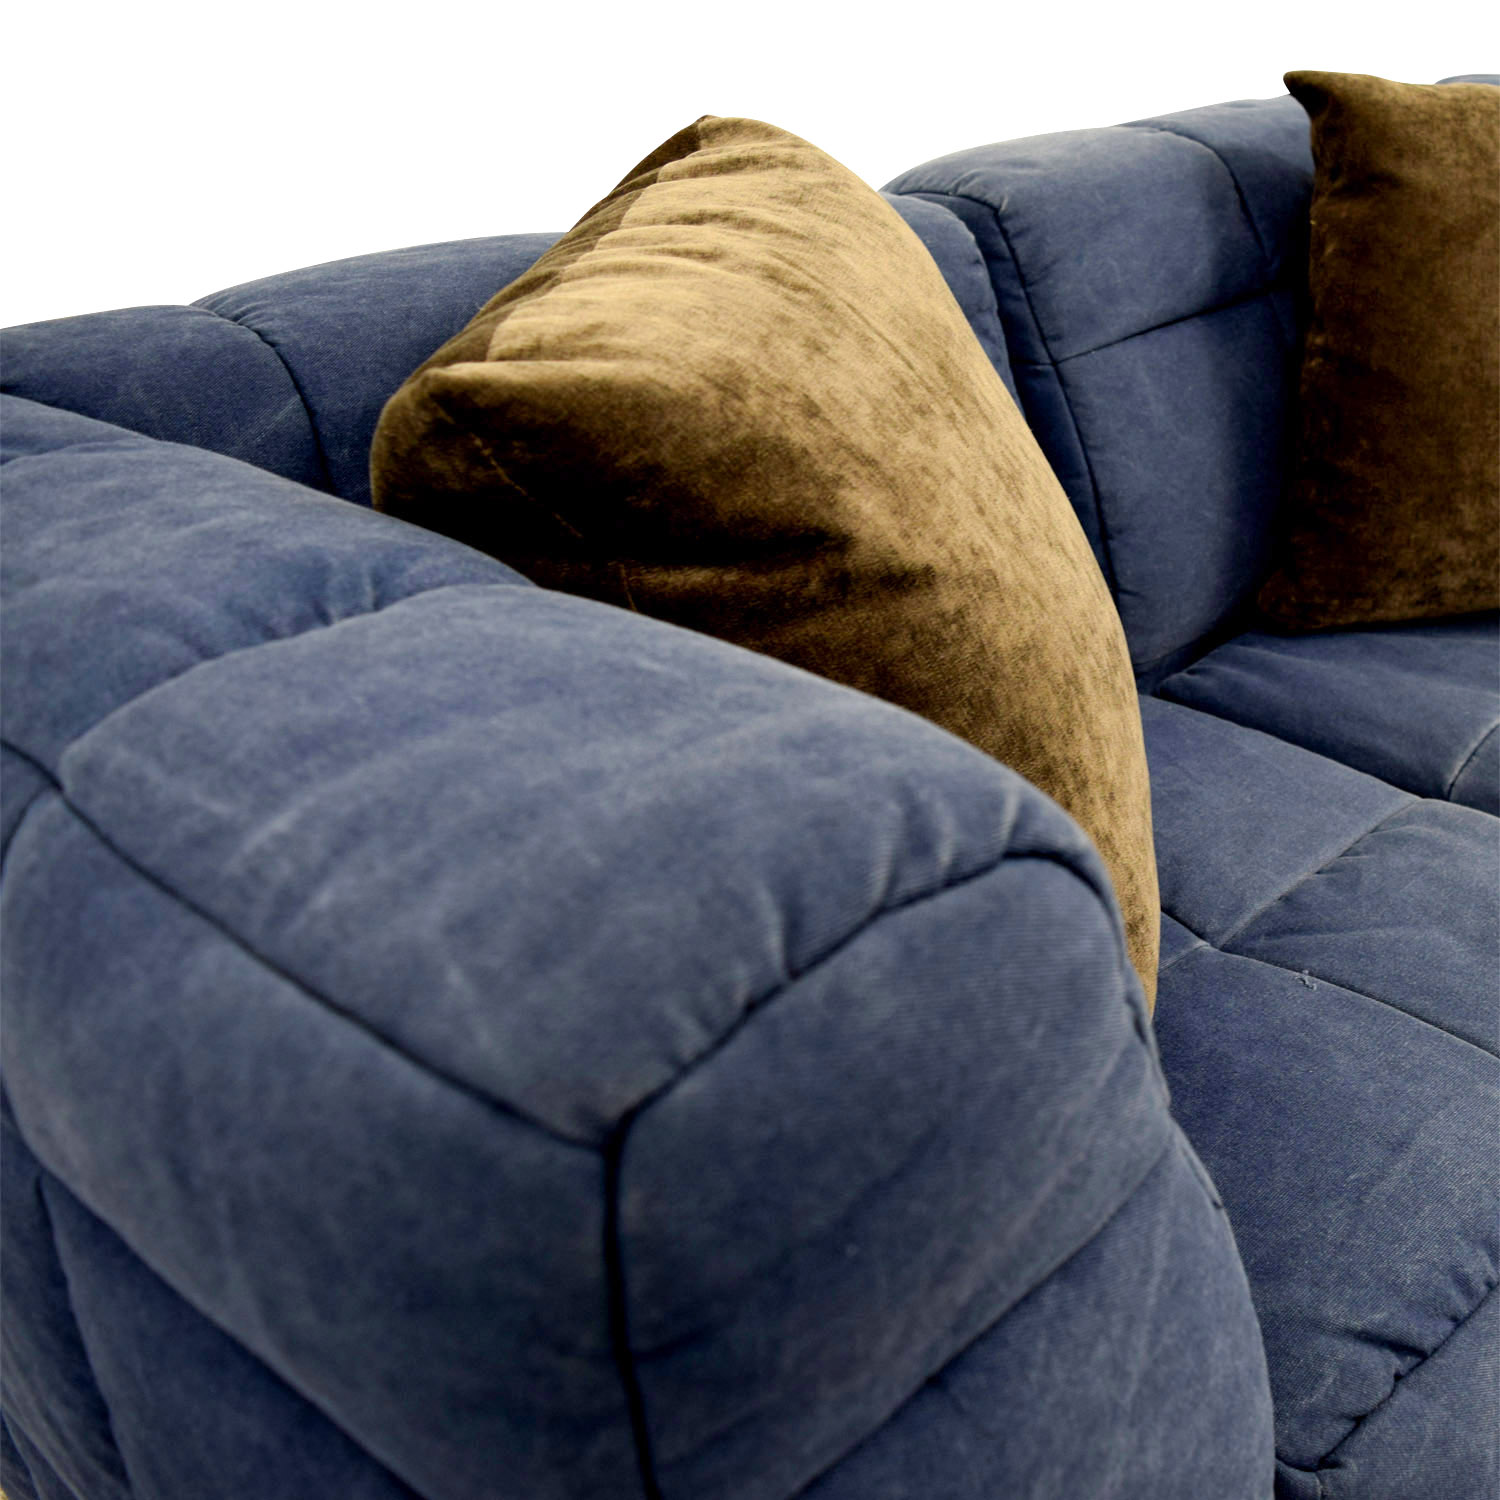 Pottery Barn Blue Corner Piece Loveseat / Loveseats